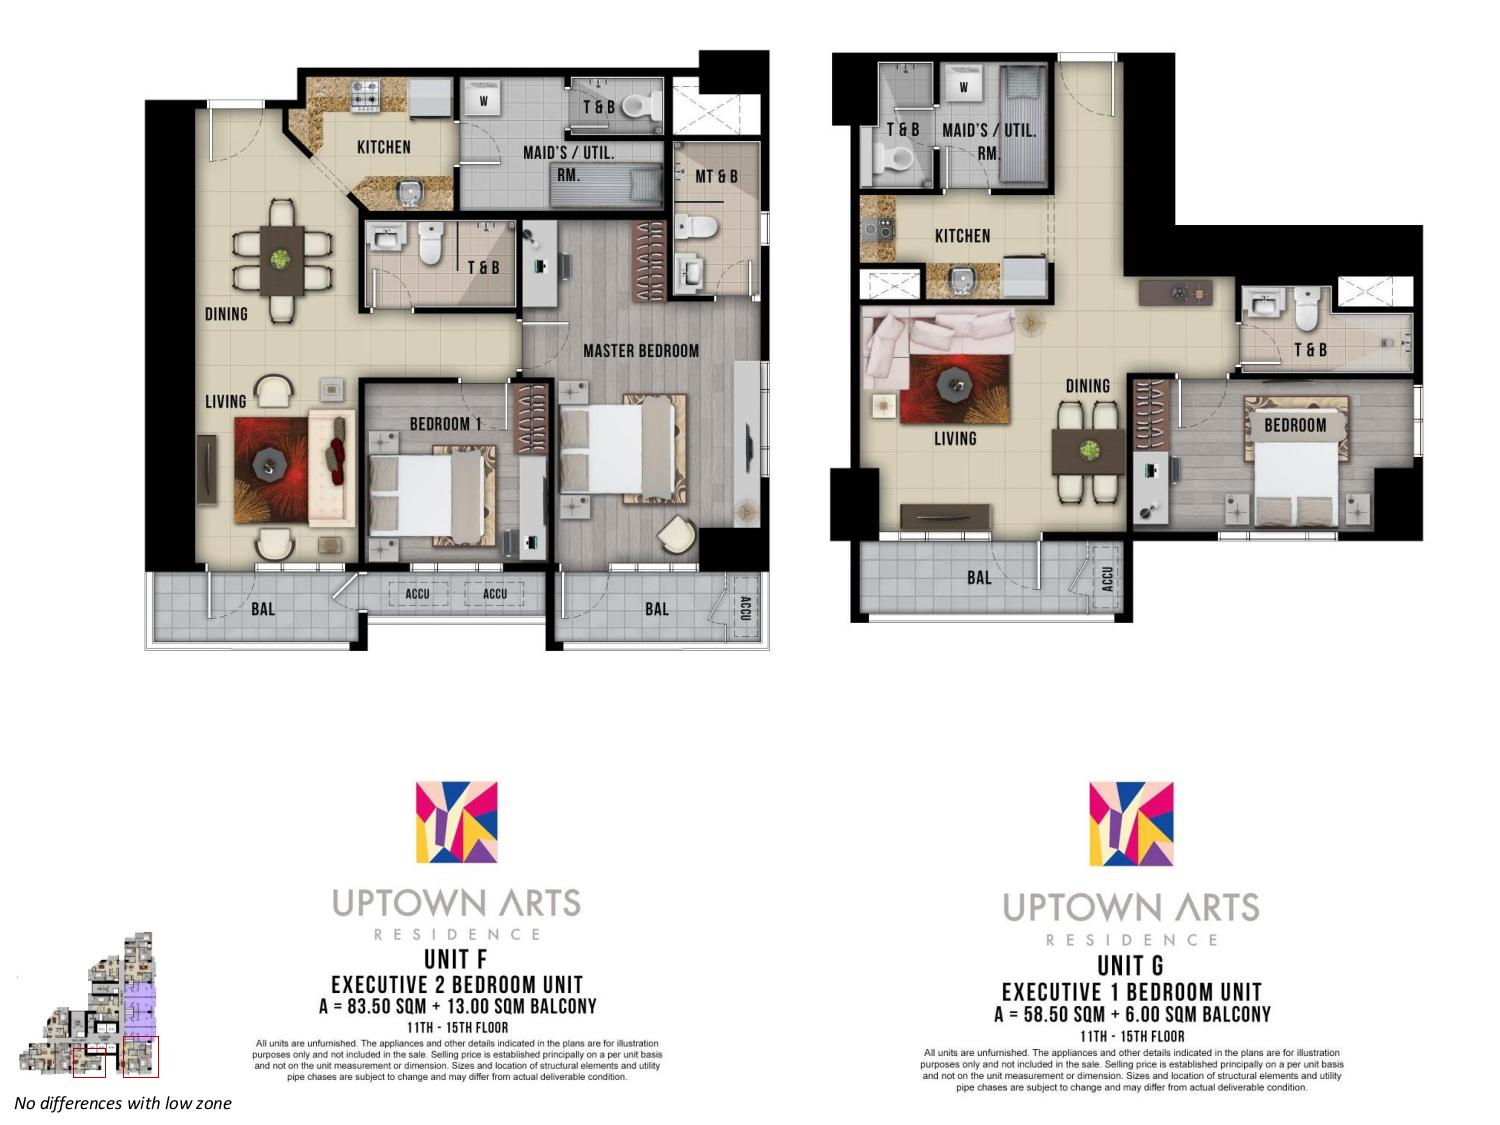 Executive Two Bedroom Loft Unit Layout Uptown Arts Residence  Preselling Condo For Sale in Bonifacio Global City BGC